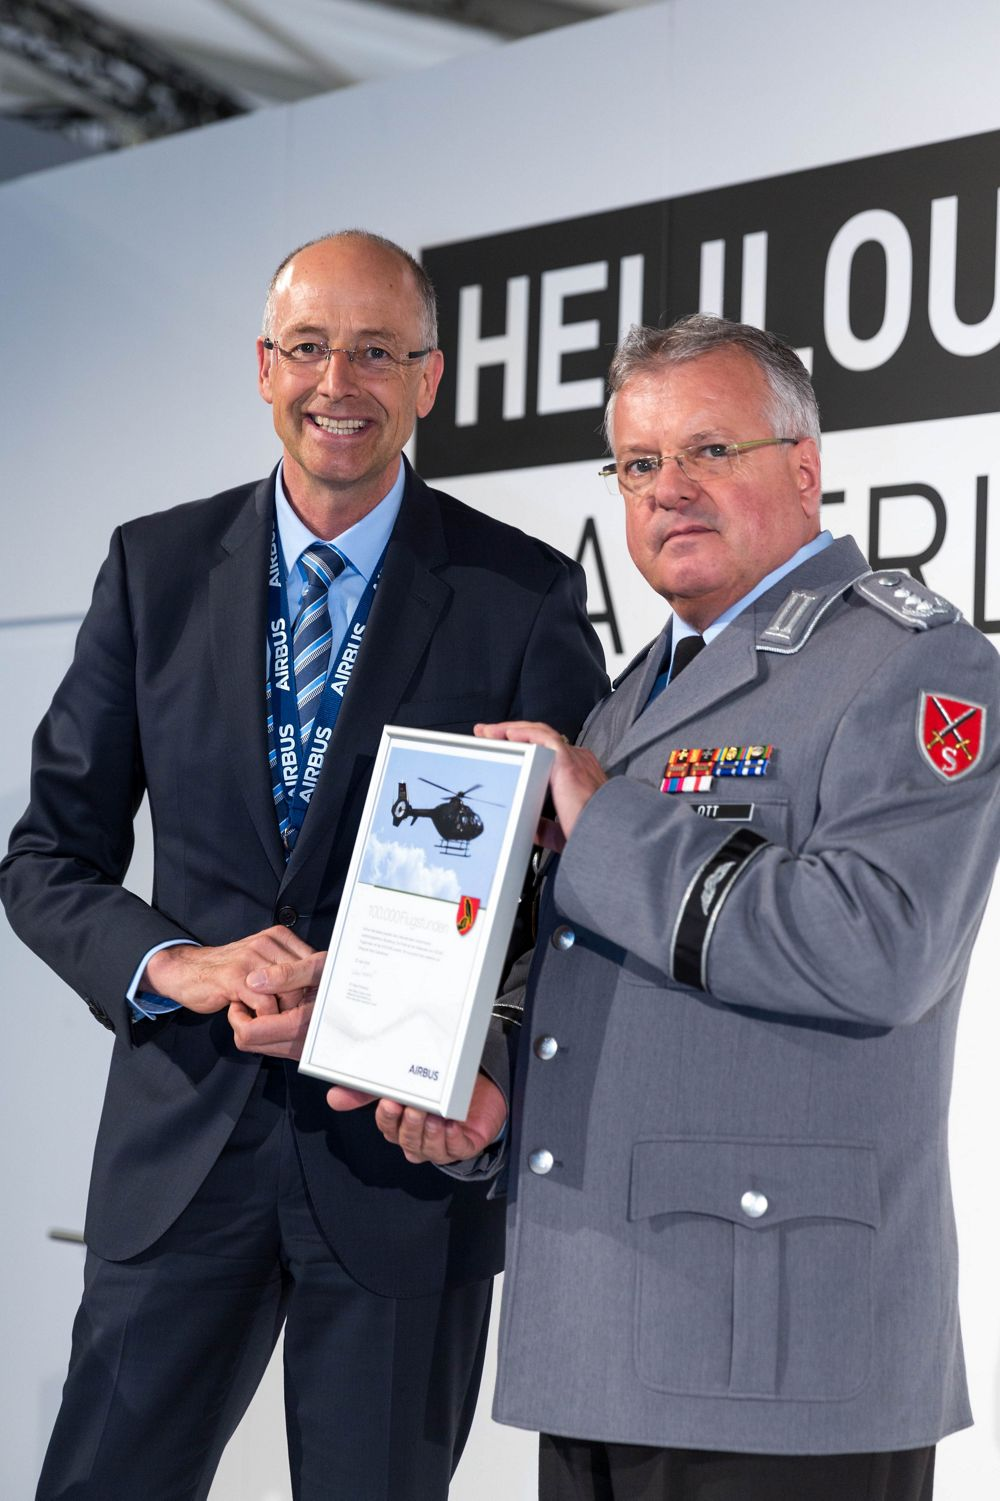 H135 training helicopters in Bückeburg, Germany reach 100,000 flight hours